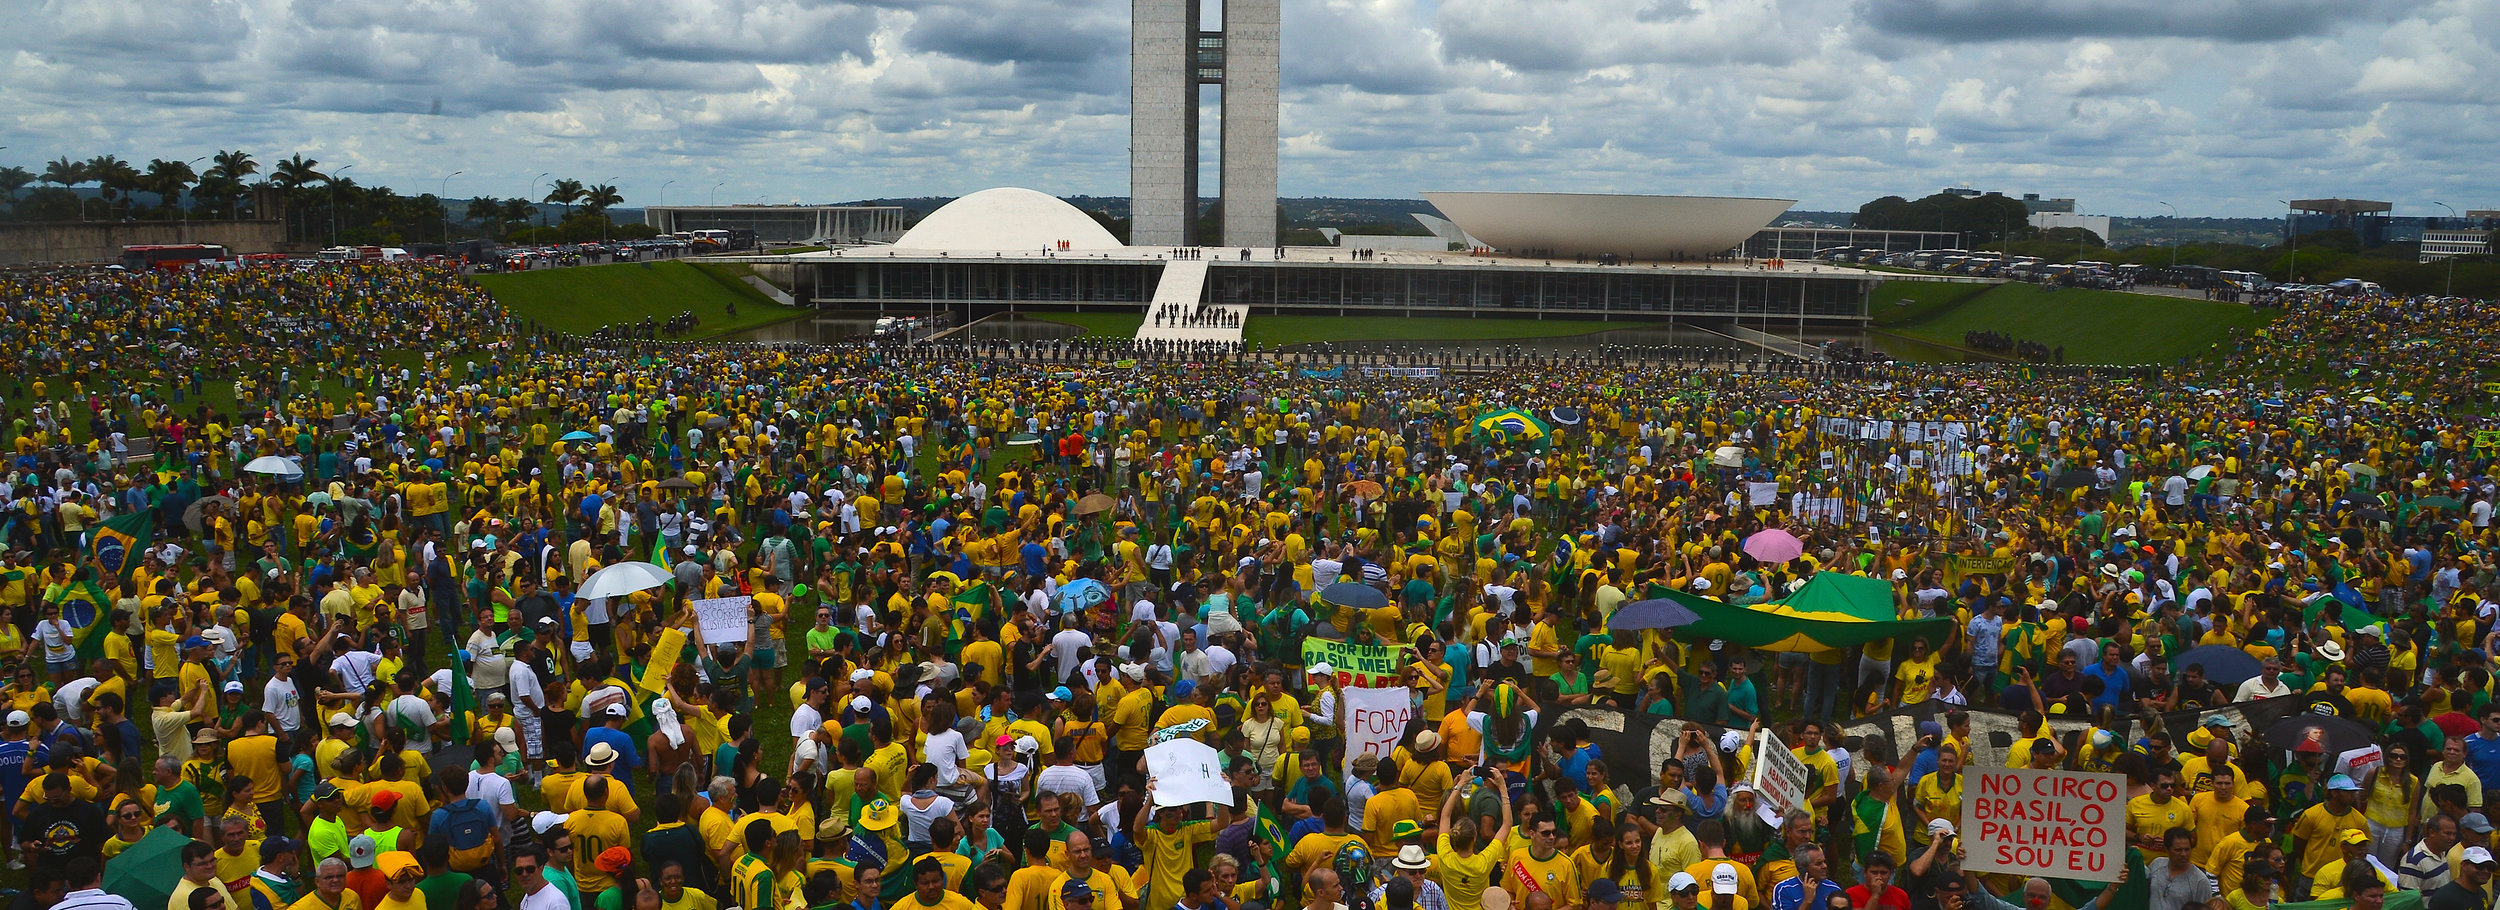 Protests against government corruption in Brazil